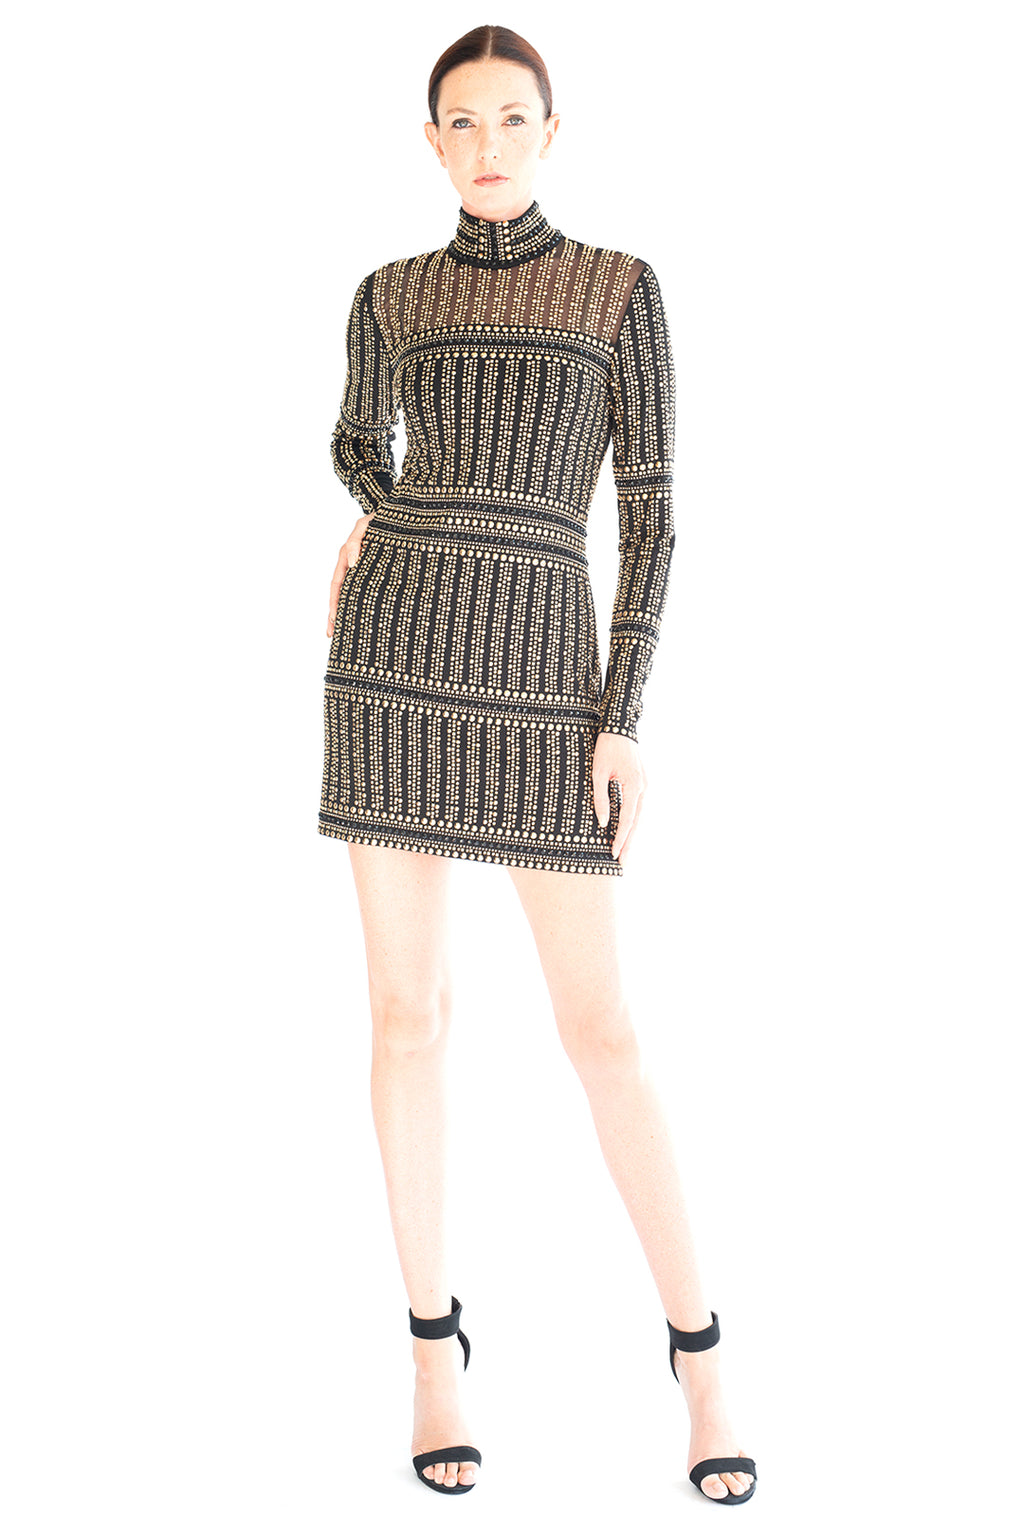 Gladiator Mock Neck Dress - W1490911